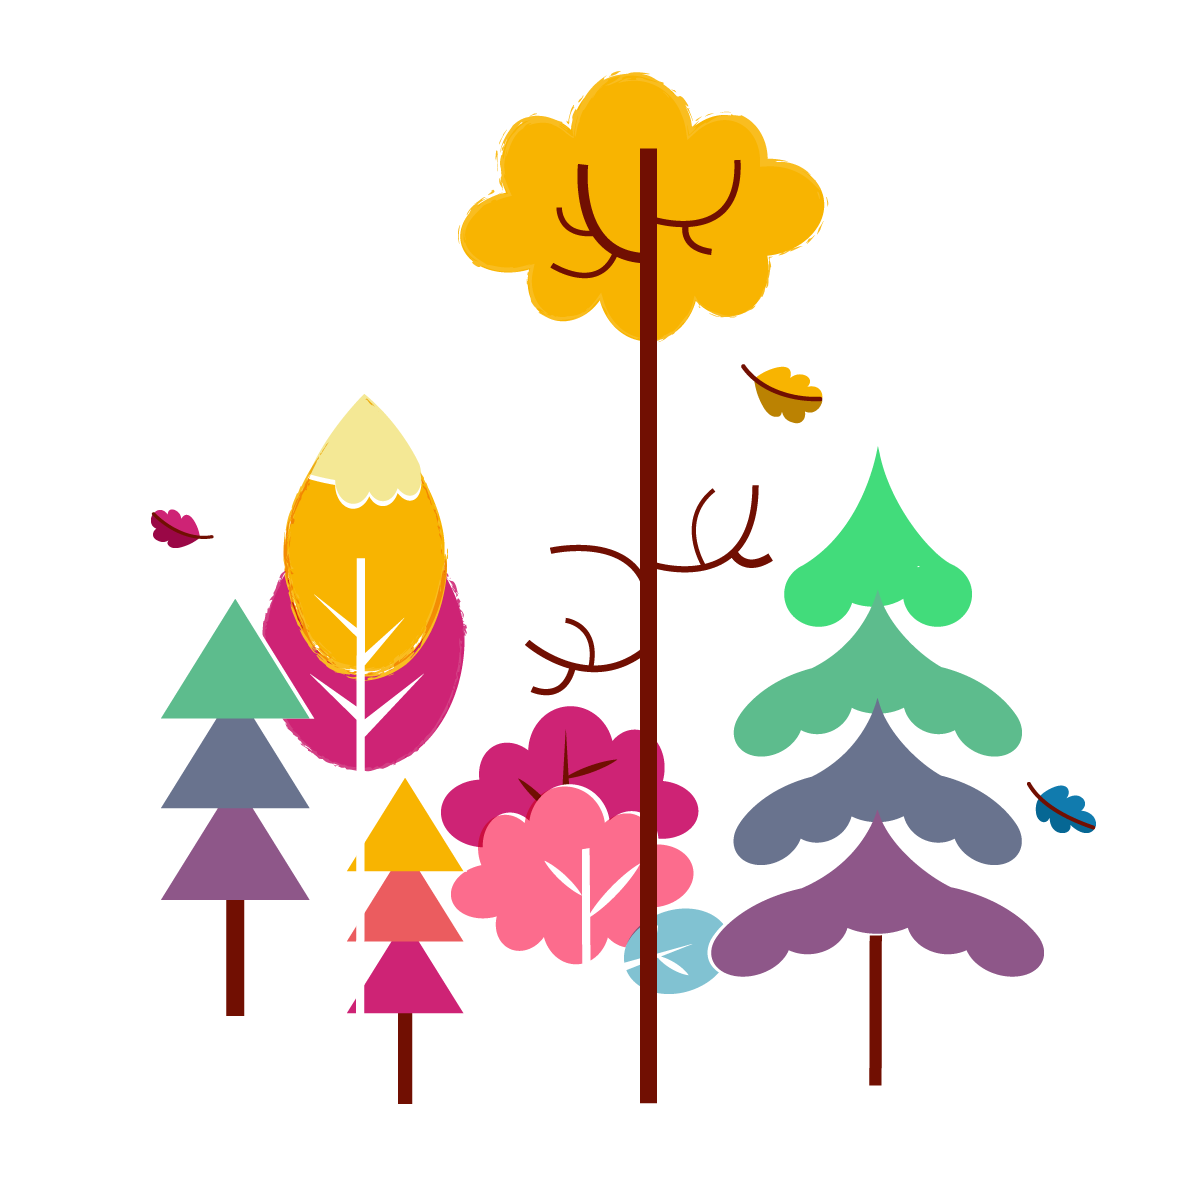 Colorful trees - Vector Illustration © Emeline Barrea, All rights reserved